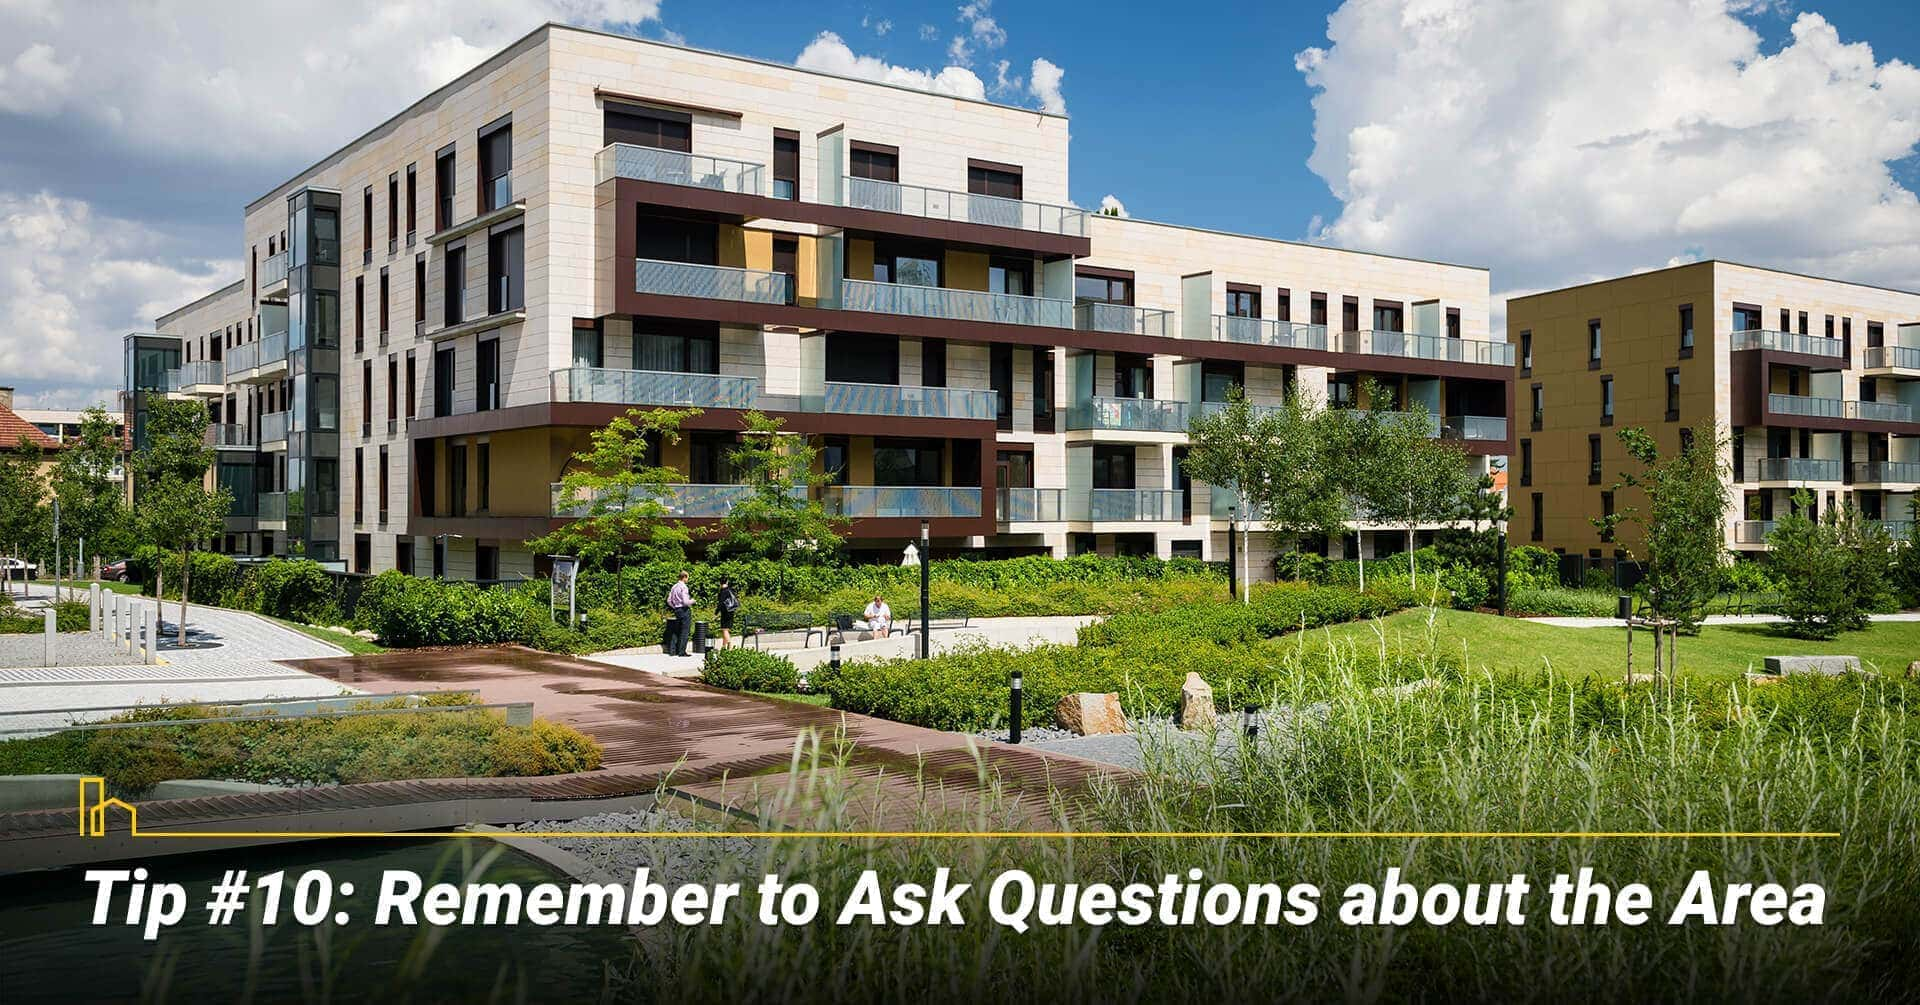 Tip #10: Remember to Ask Questions about the Area, get to know about the area